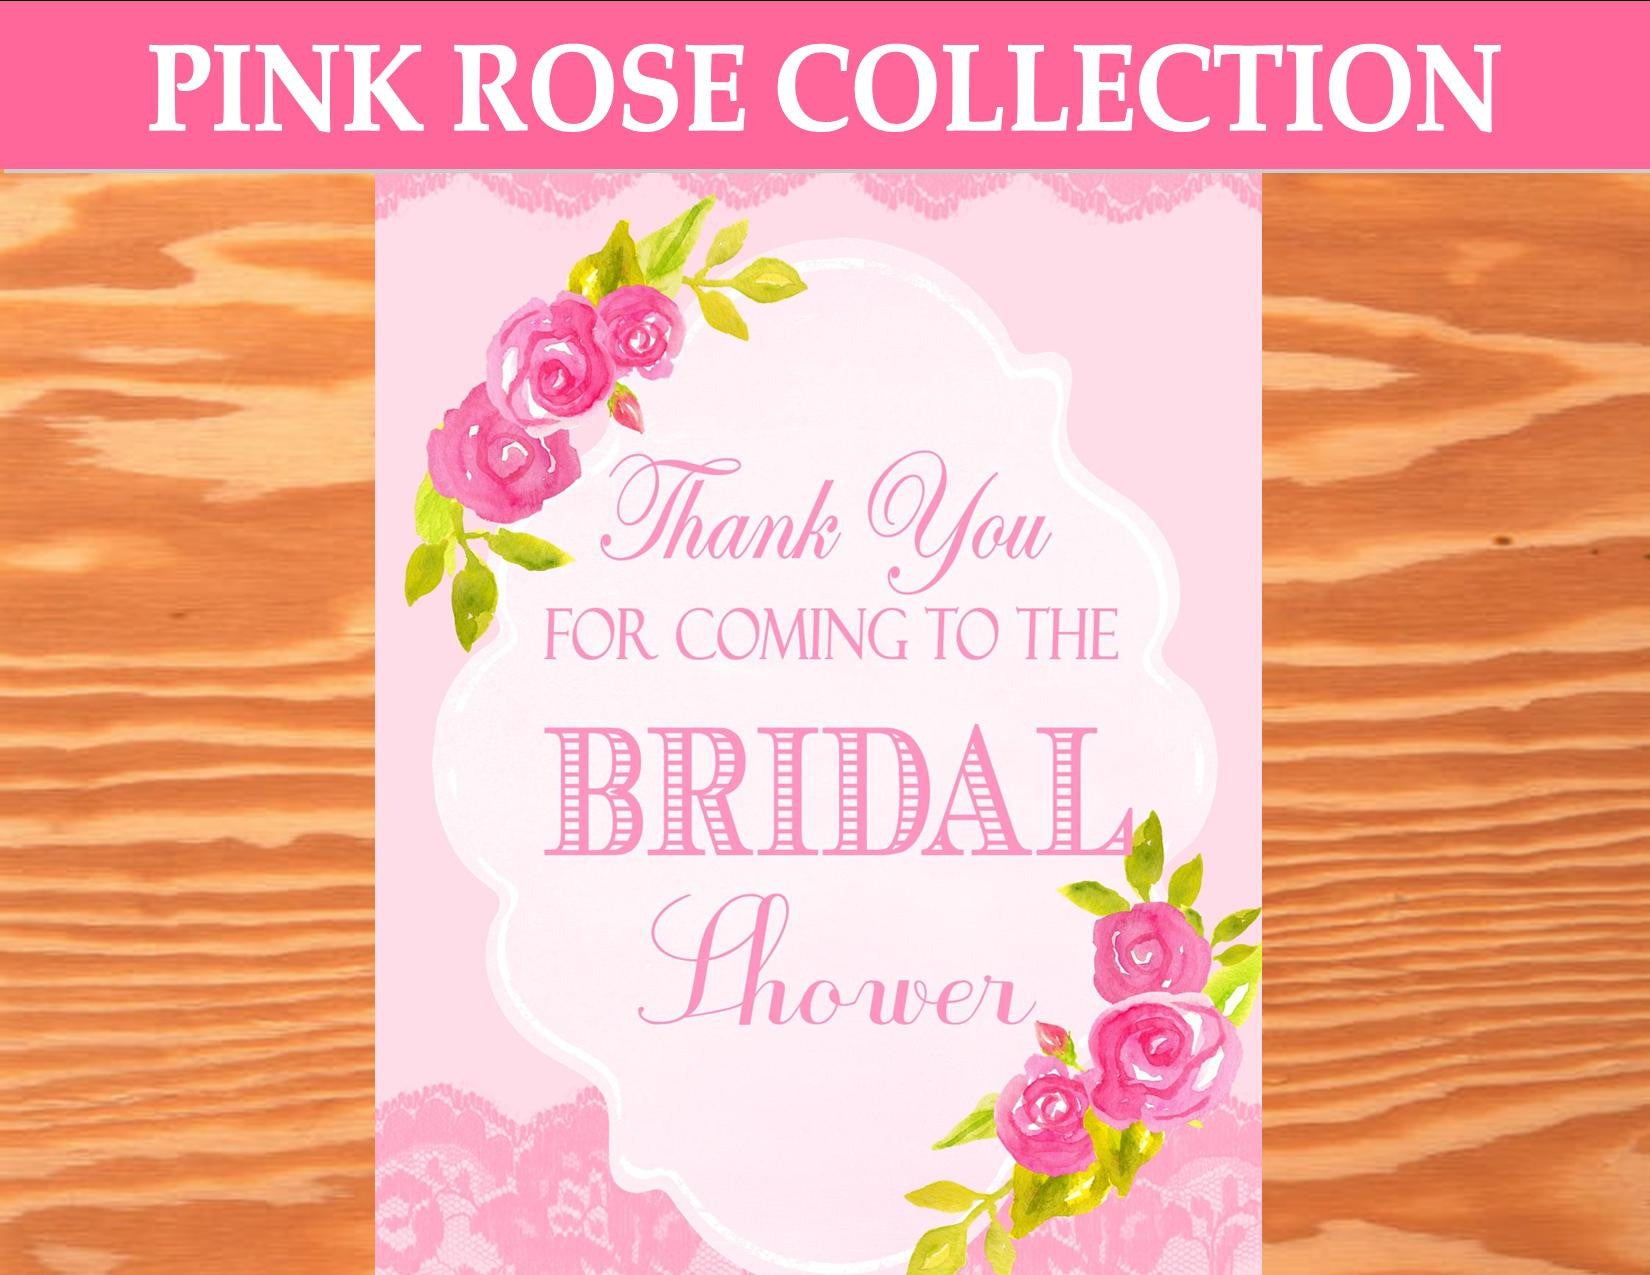 PINK BRIDAL SHOWER - WEDDING THANK YOU SIGN